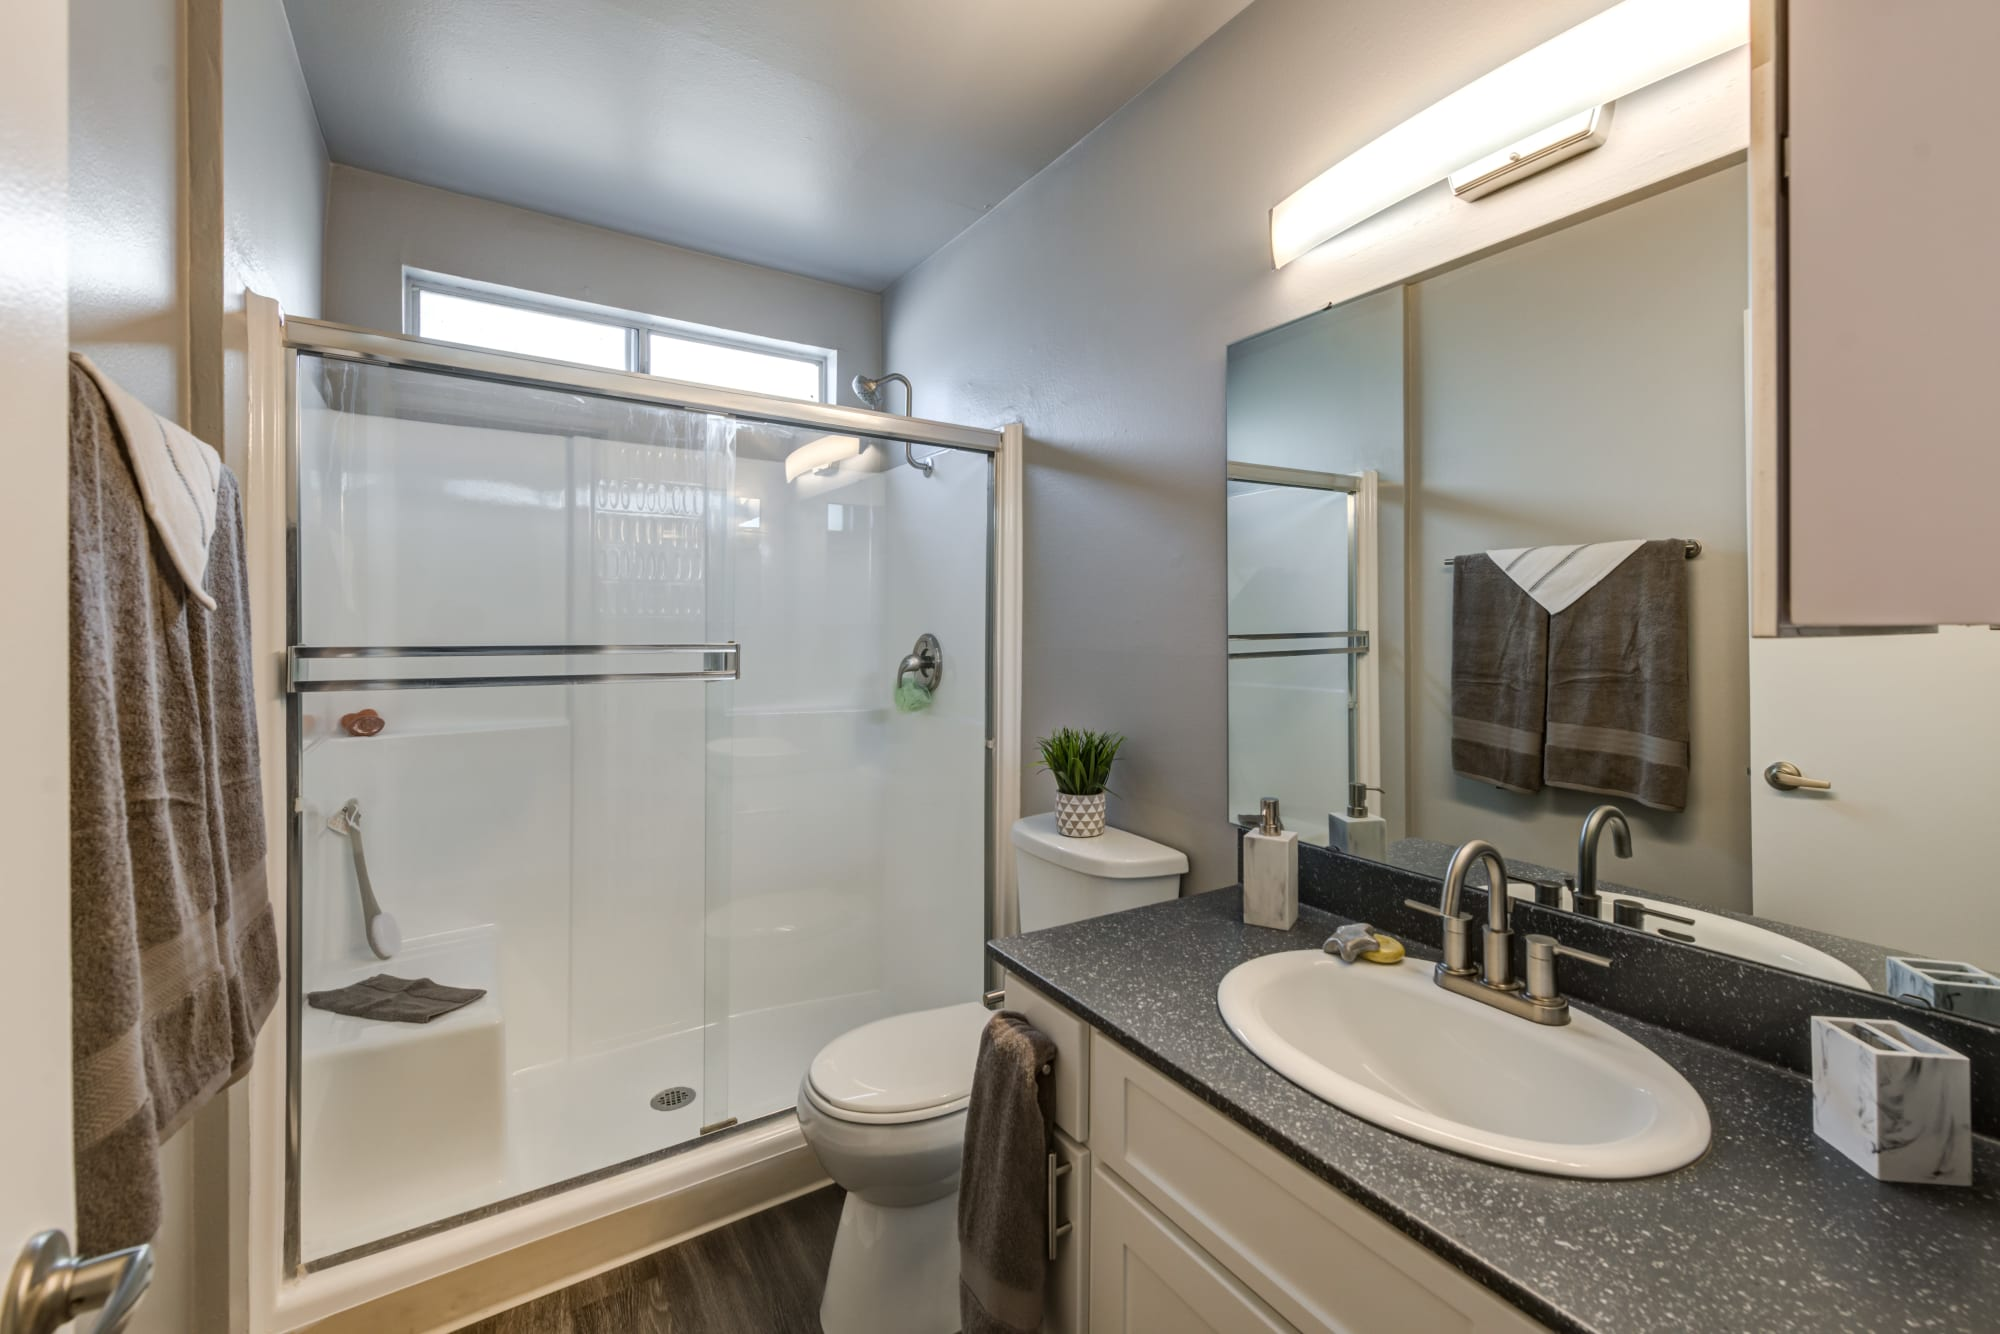 A renovated bathroom with white cabinets at Kendallwood Apartments in Whittier, California